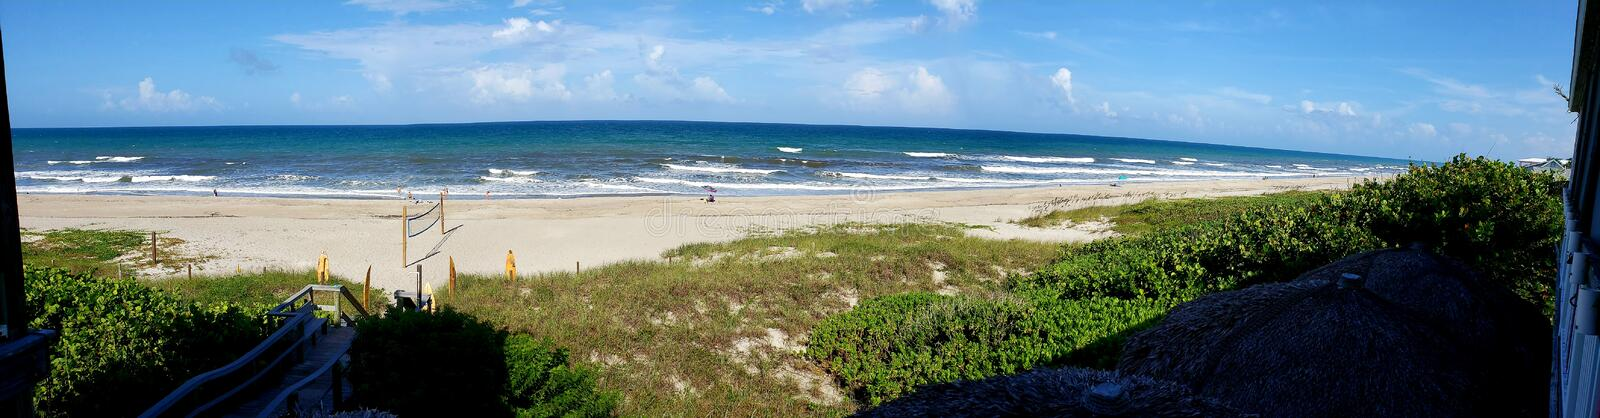 Before Hurricane Dorian. Panoramic view of Melbourne Beach just before Hurricane Dorian royalty free stock image